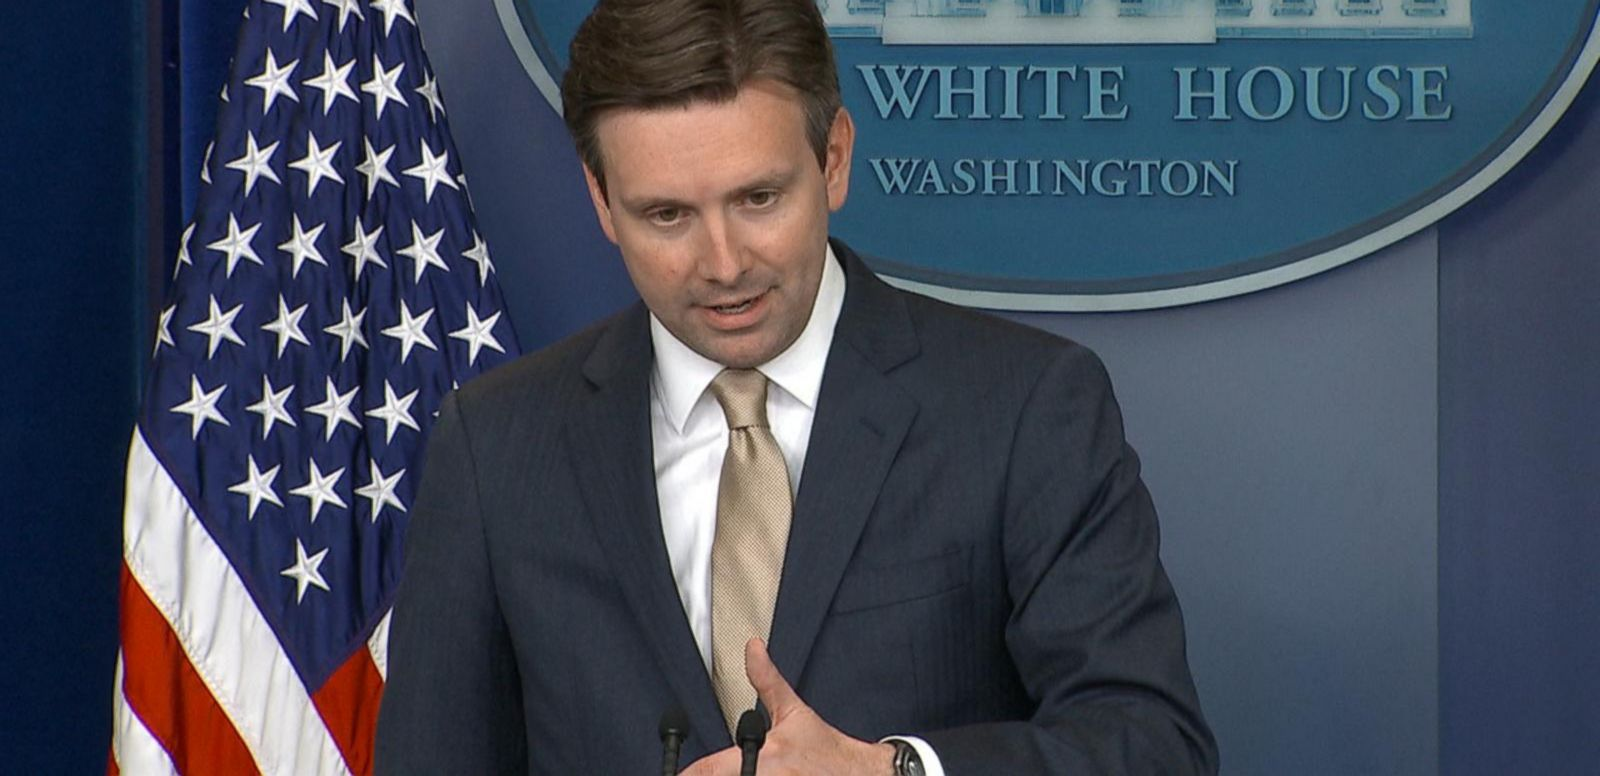 VIDEO: White House Doesn't Refute Defense Sec. Carter's Comment That Iraqis Lack the Will To Fight